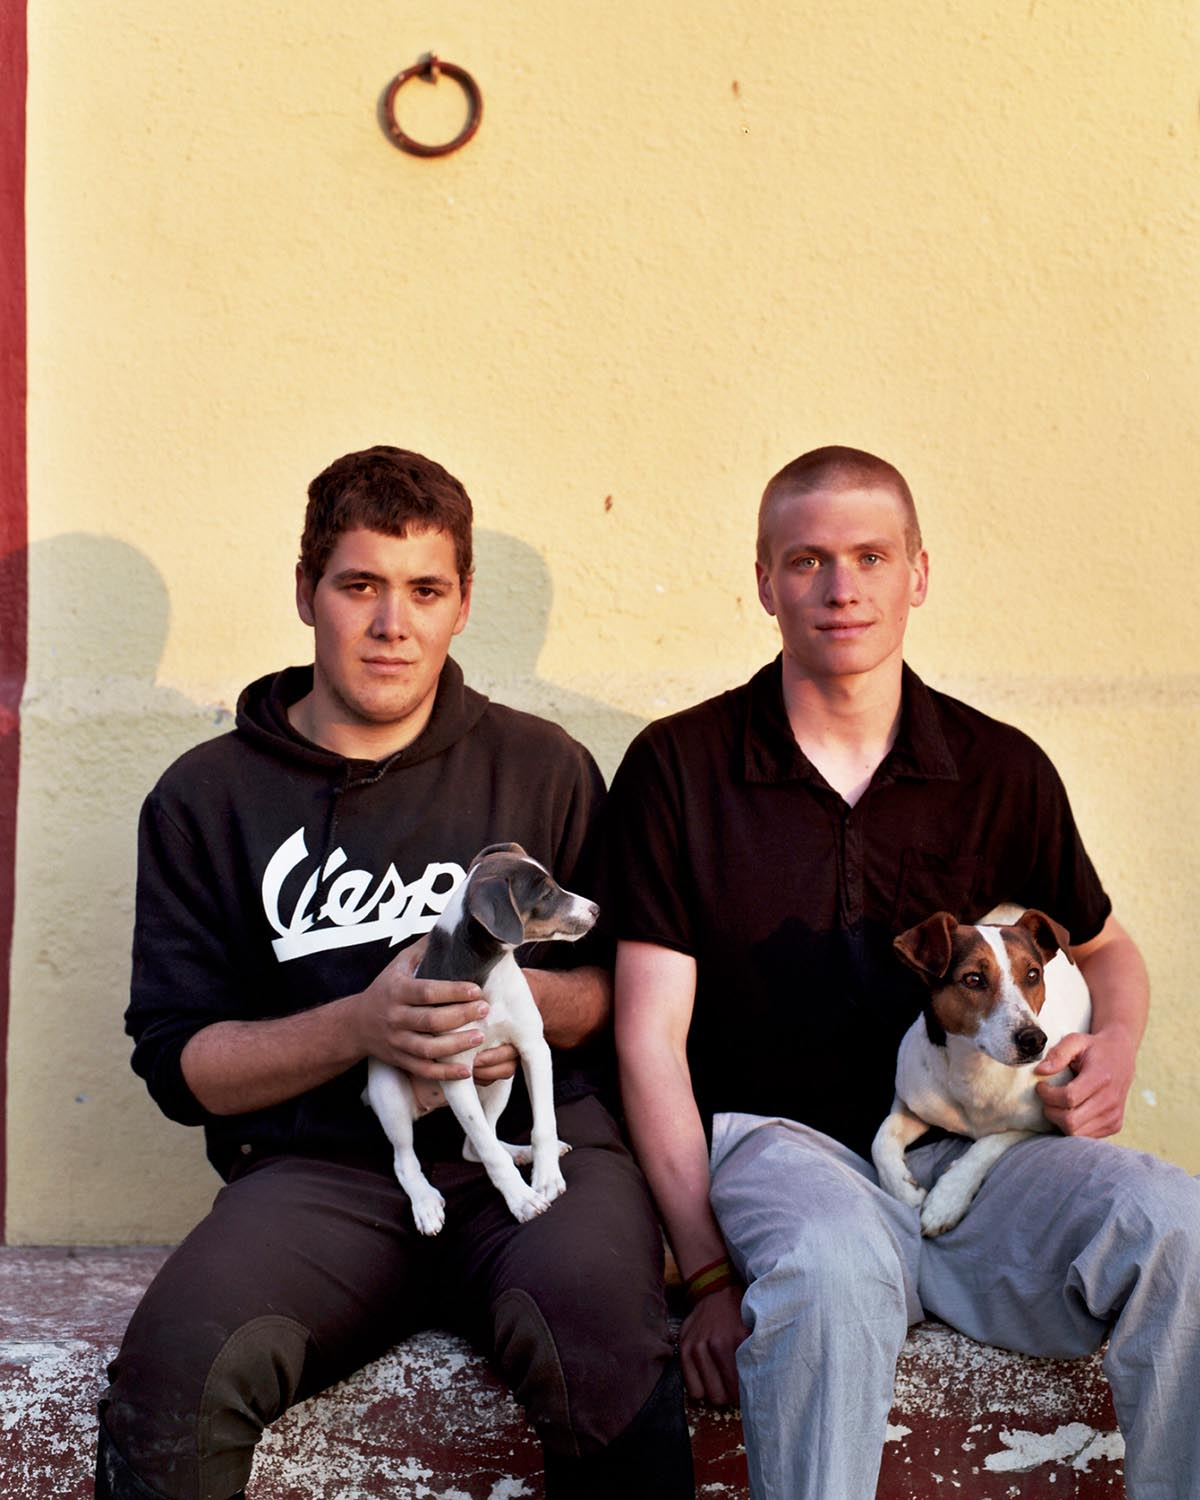 comissions-1-beau-locals-at-the-stable-sya-spain-zaragoza-hi-res-web